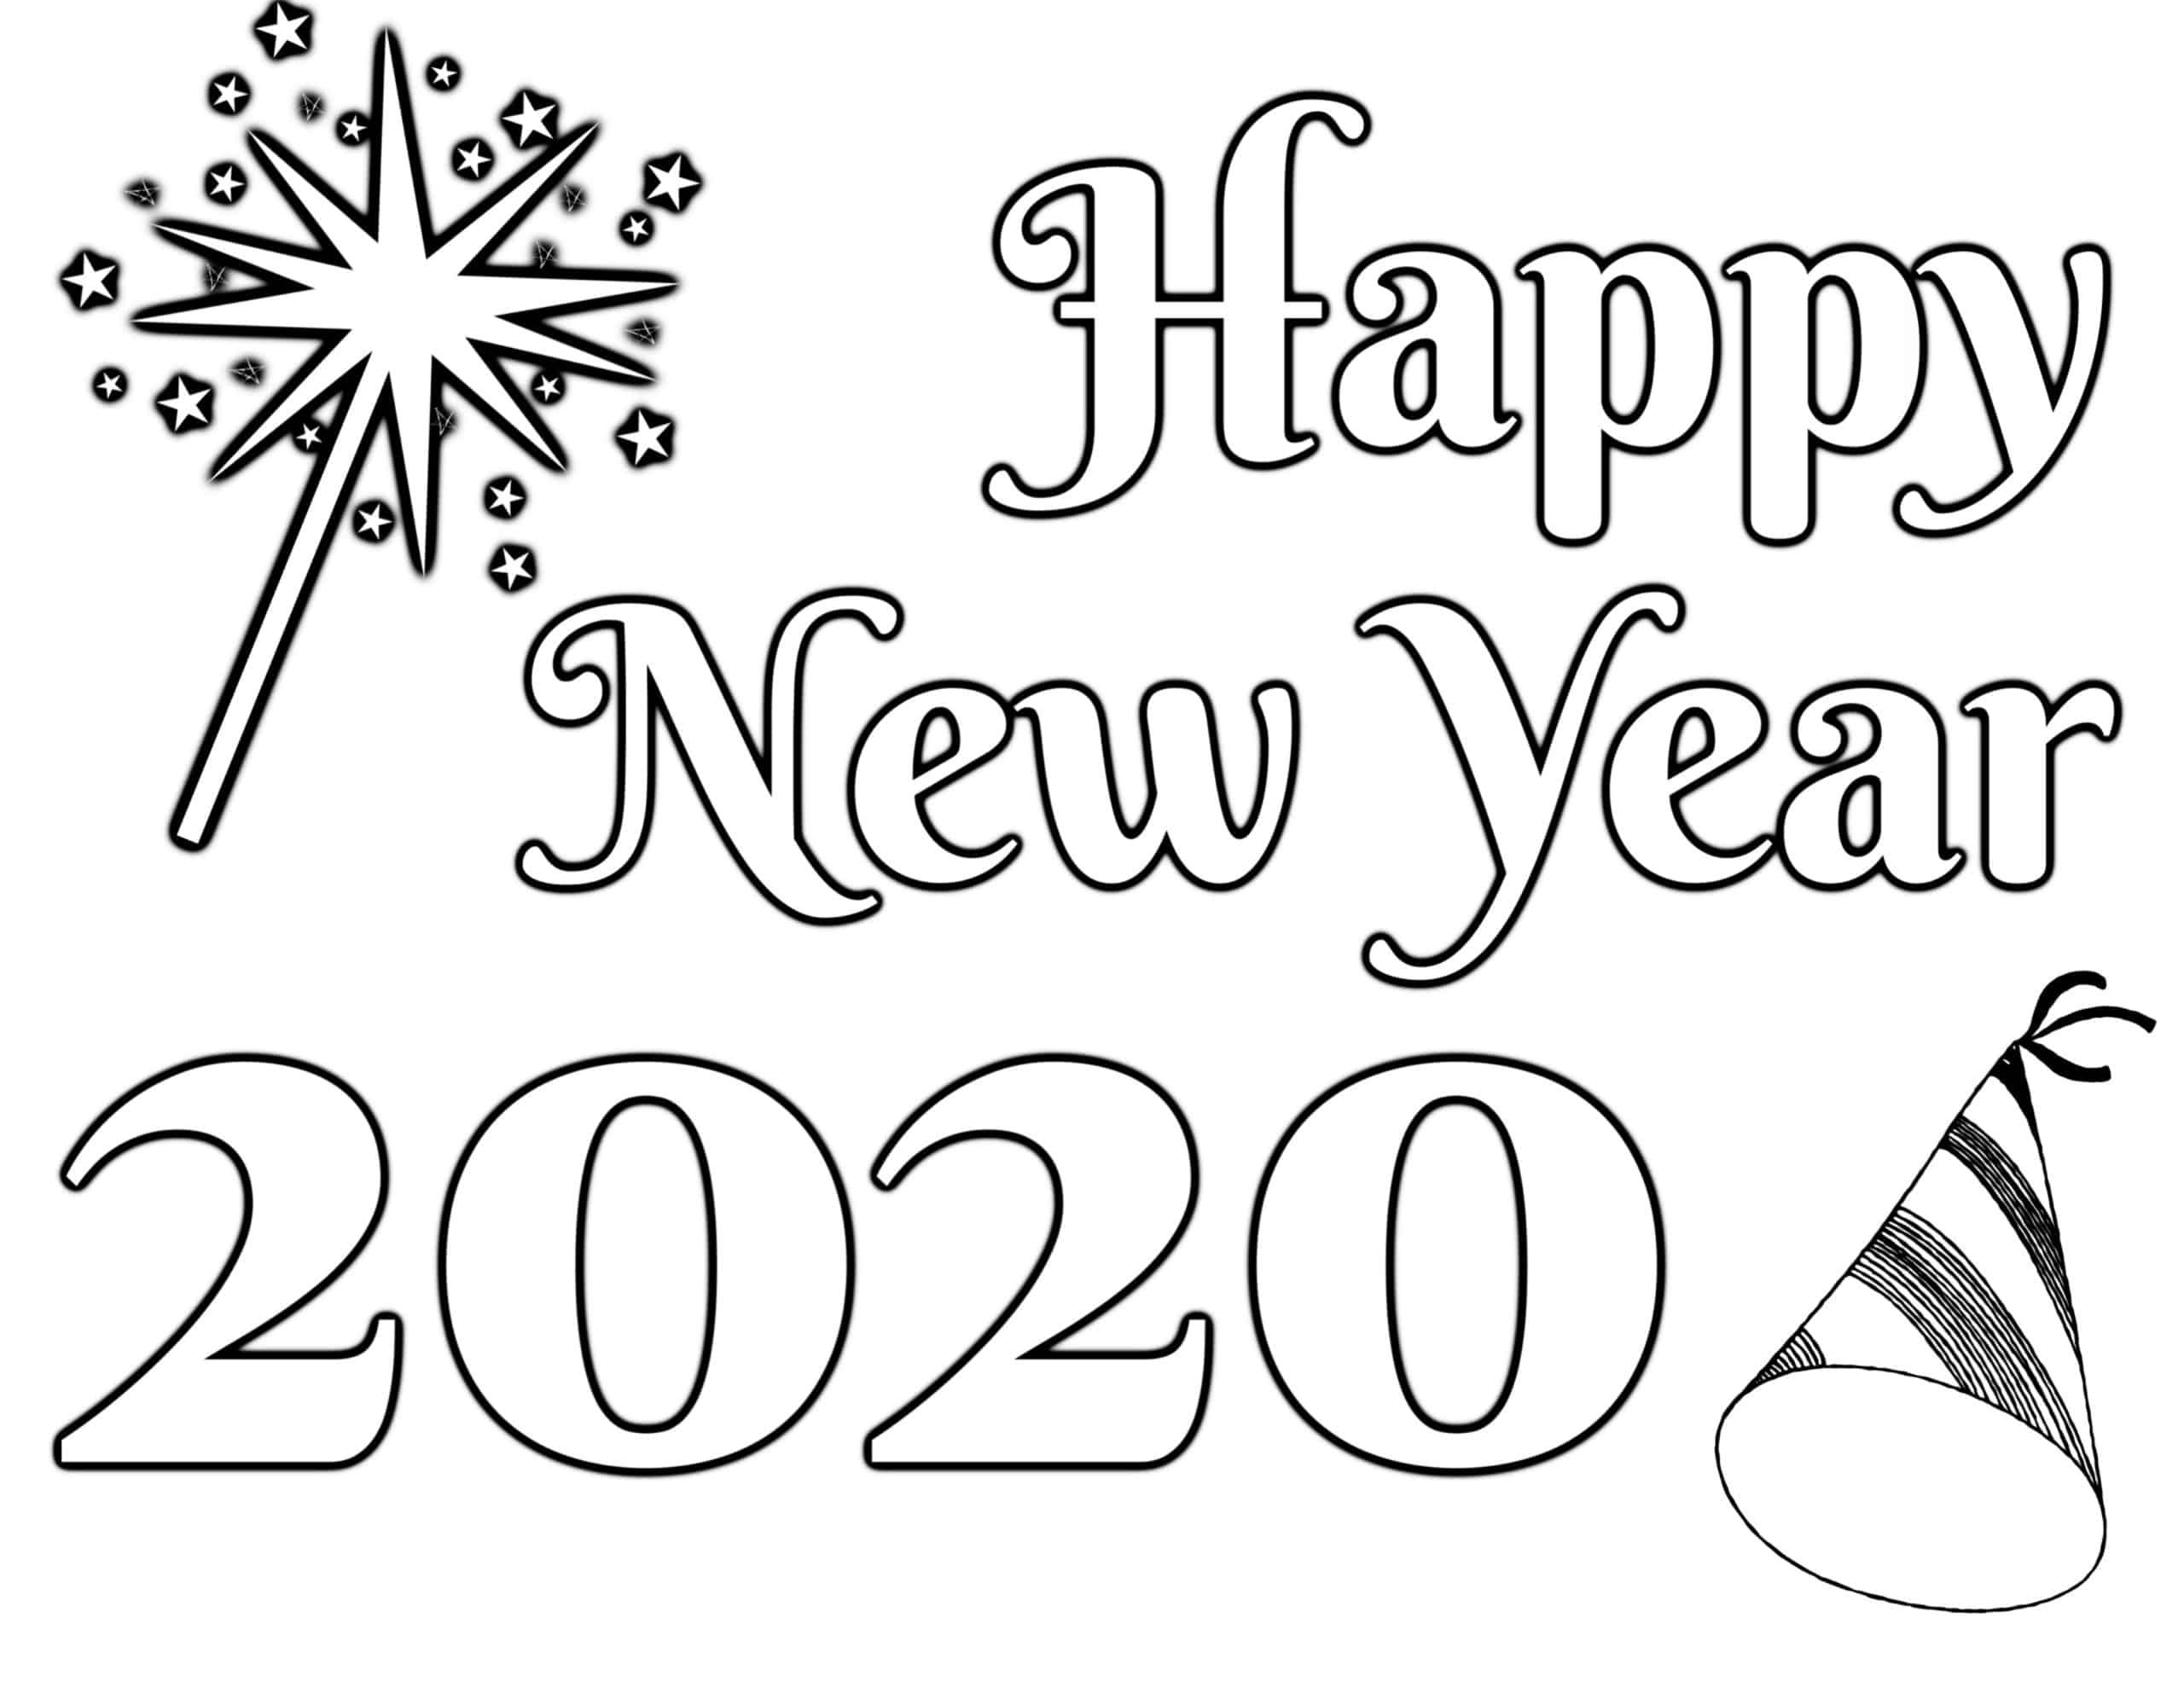 Awesome New Year S Eve Coloring Pages Free Printable In 2021 New Year Coloring Pages Coloring Pages New Year Printables